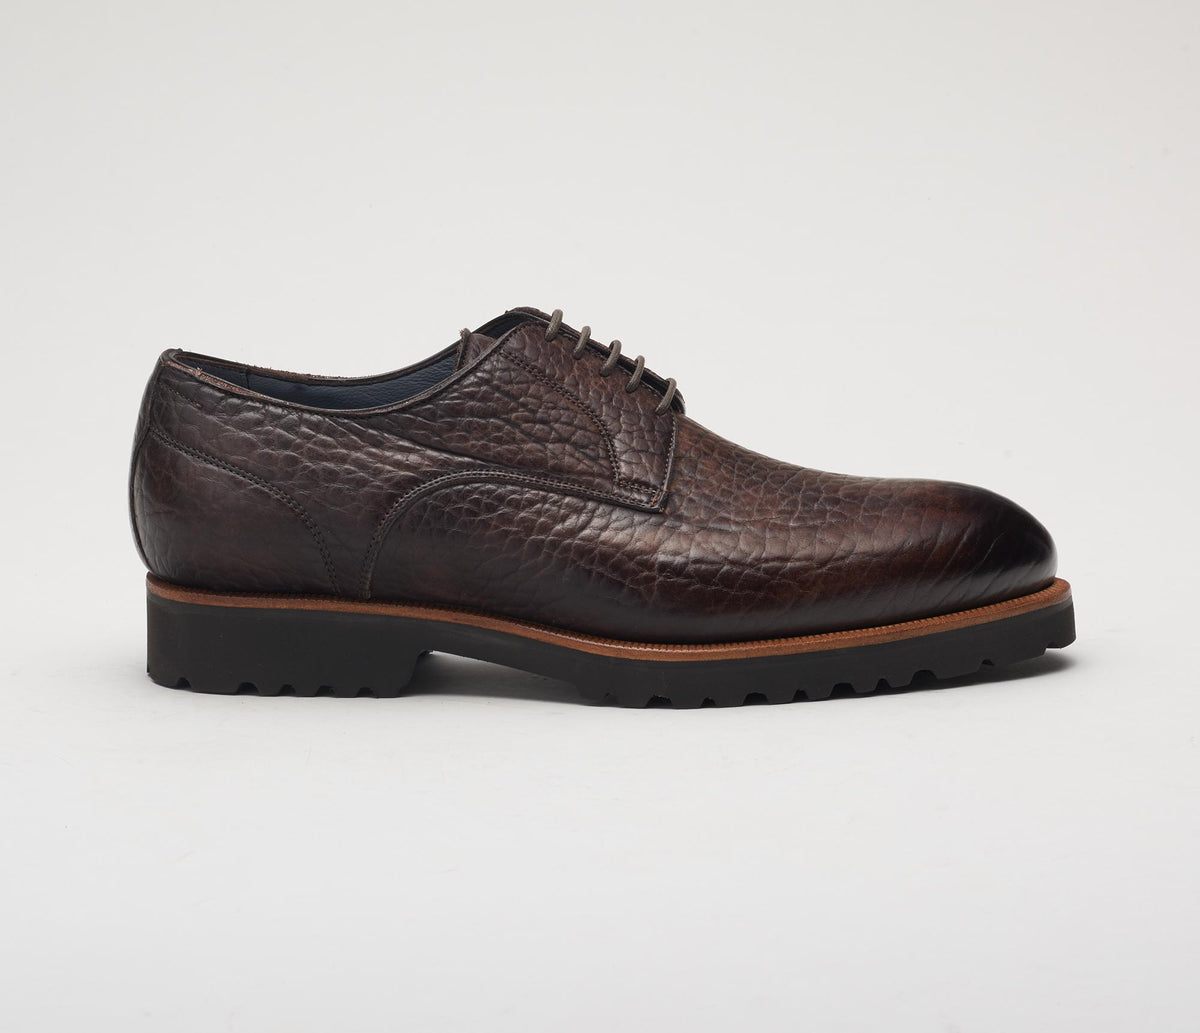 The Pisa T-Moro Men's Derby Shoes